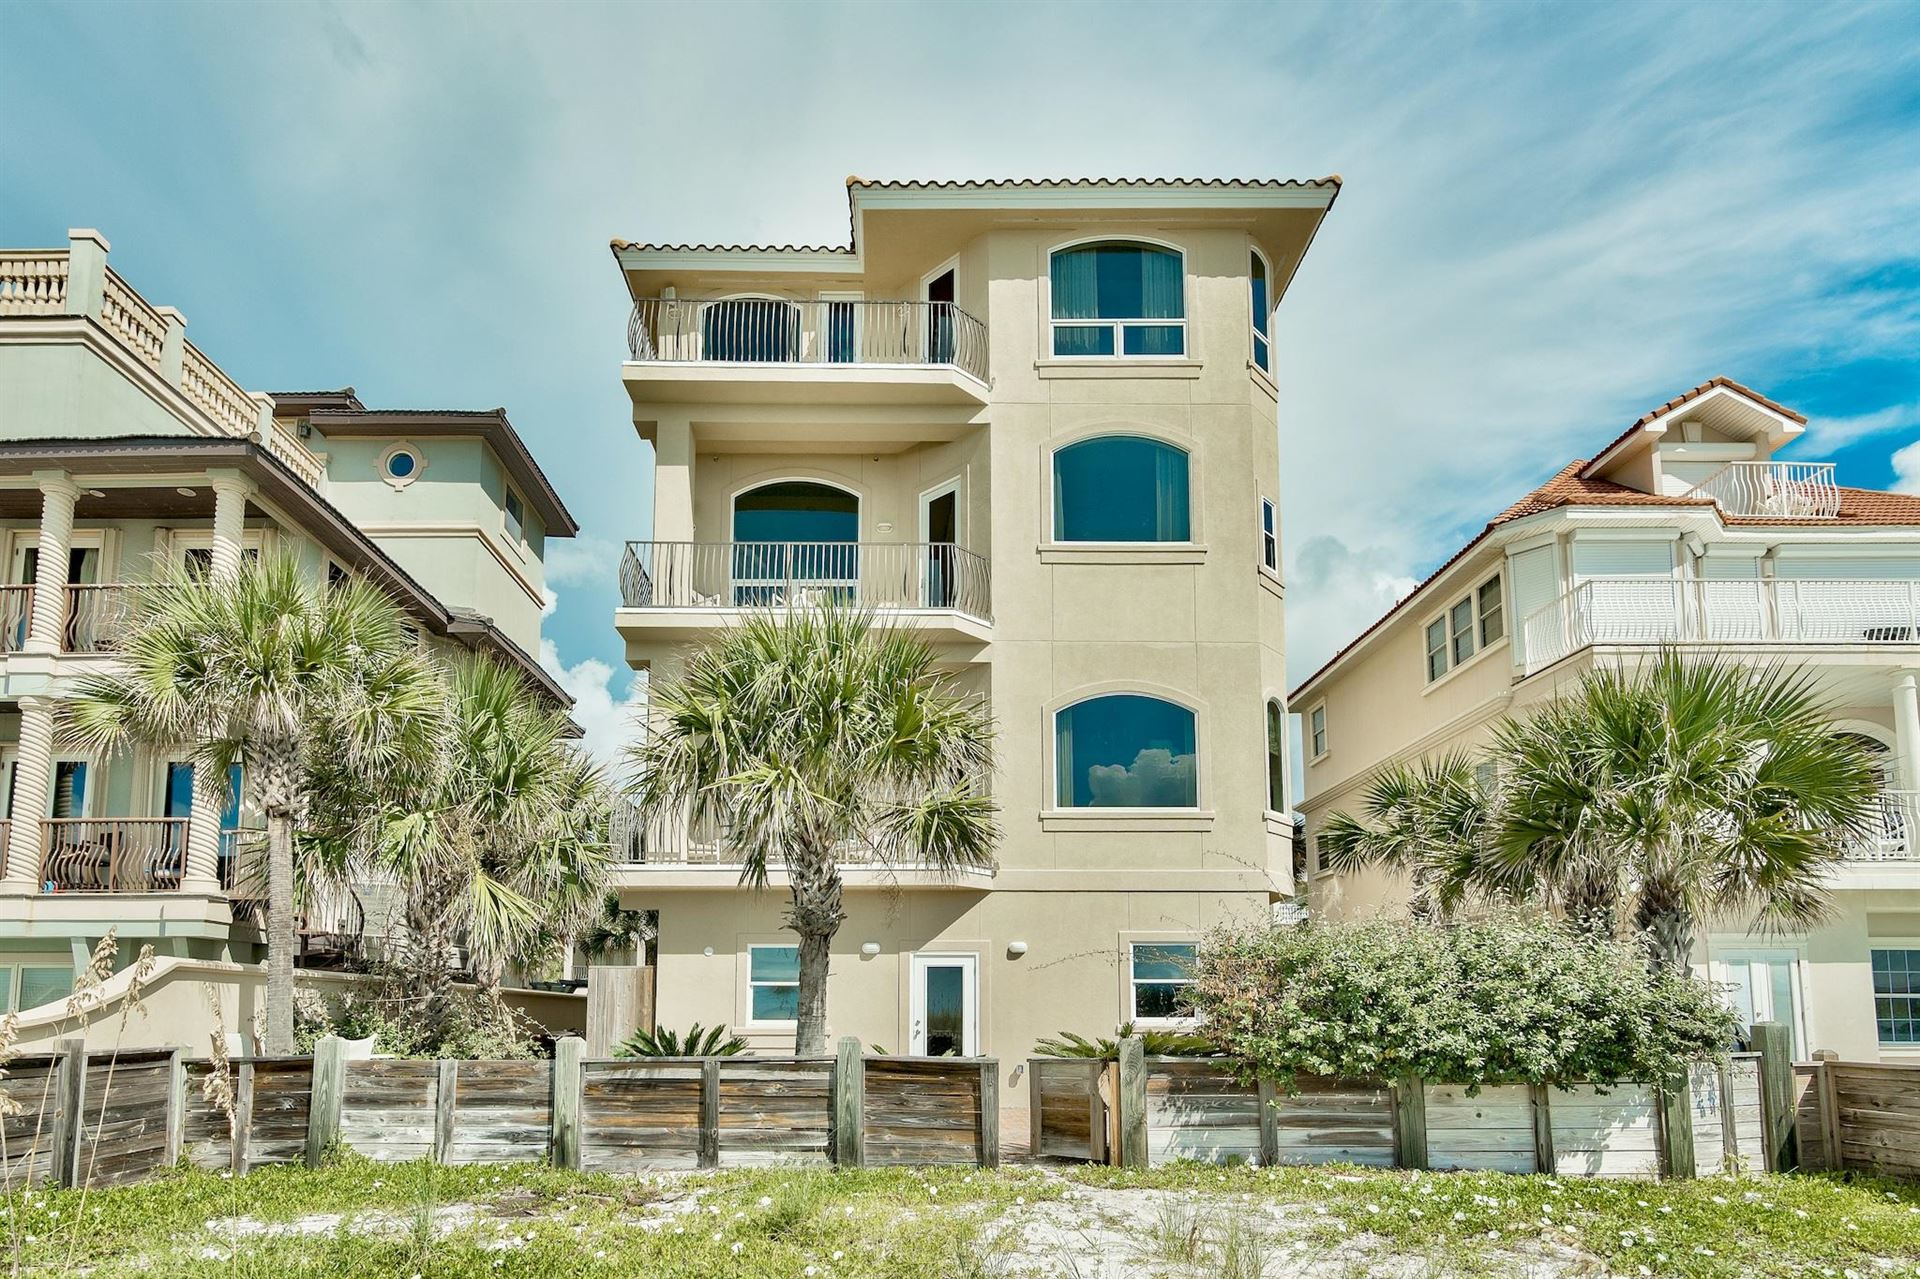 120 Sandprint Circle Destin Fl Mls 828578 6 Bed 7